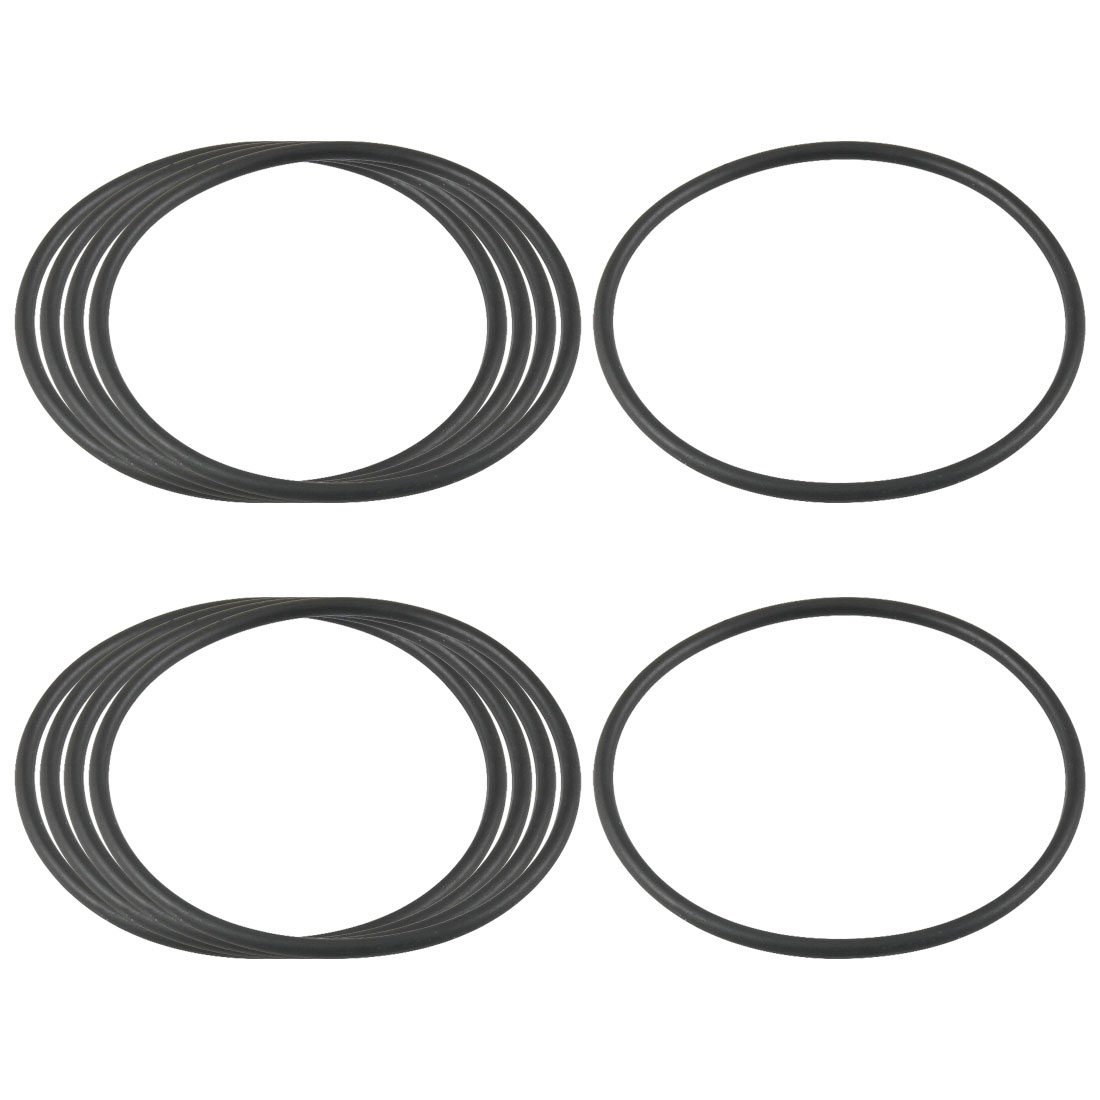 10 Pcs Black 48mm OD 2mm Thickness Nitrile Rubber O-ring Oil Seal Gaskets